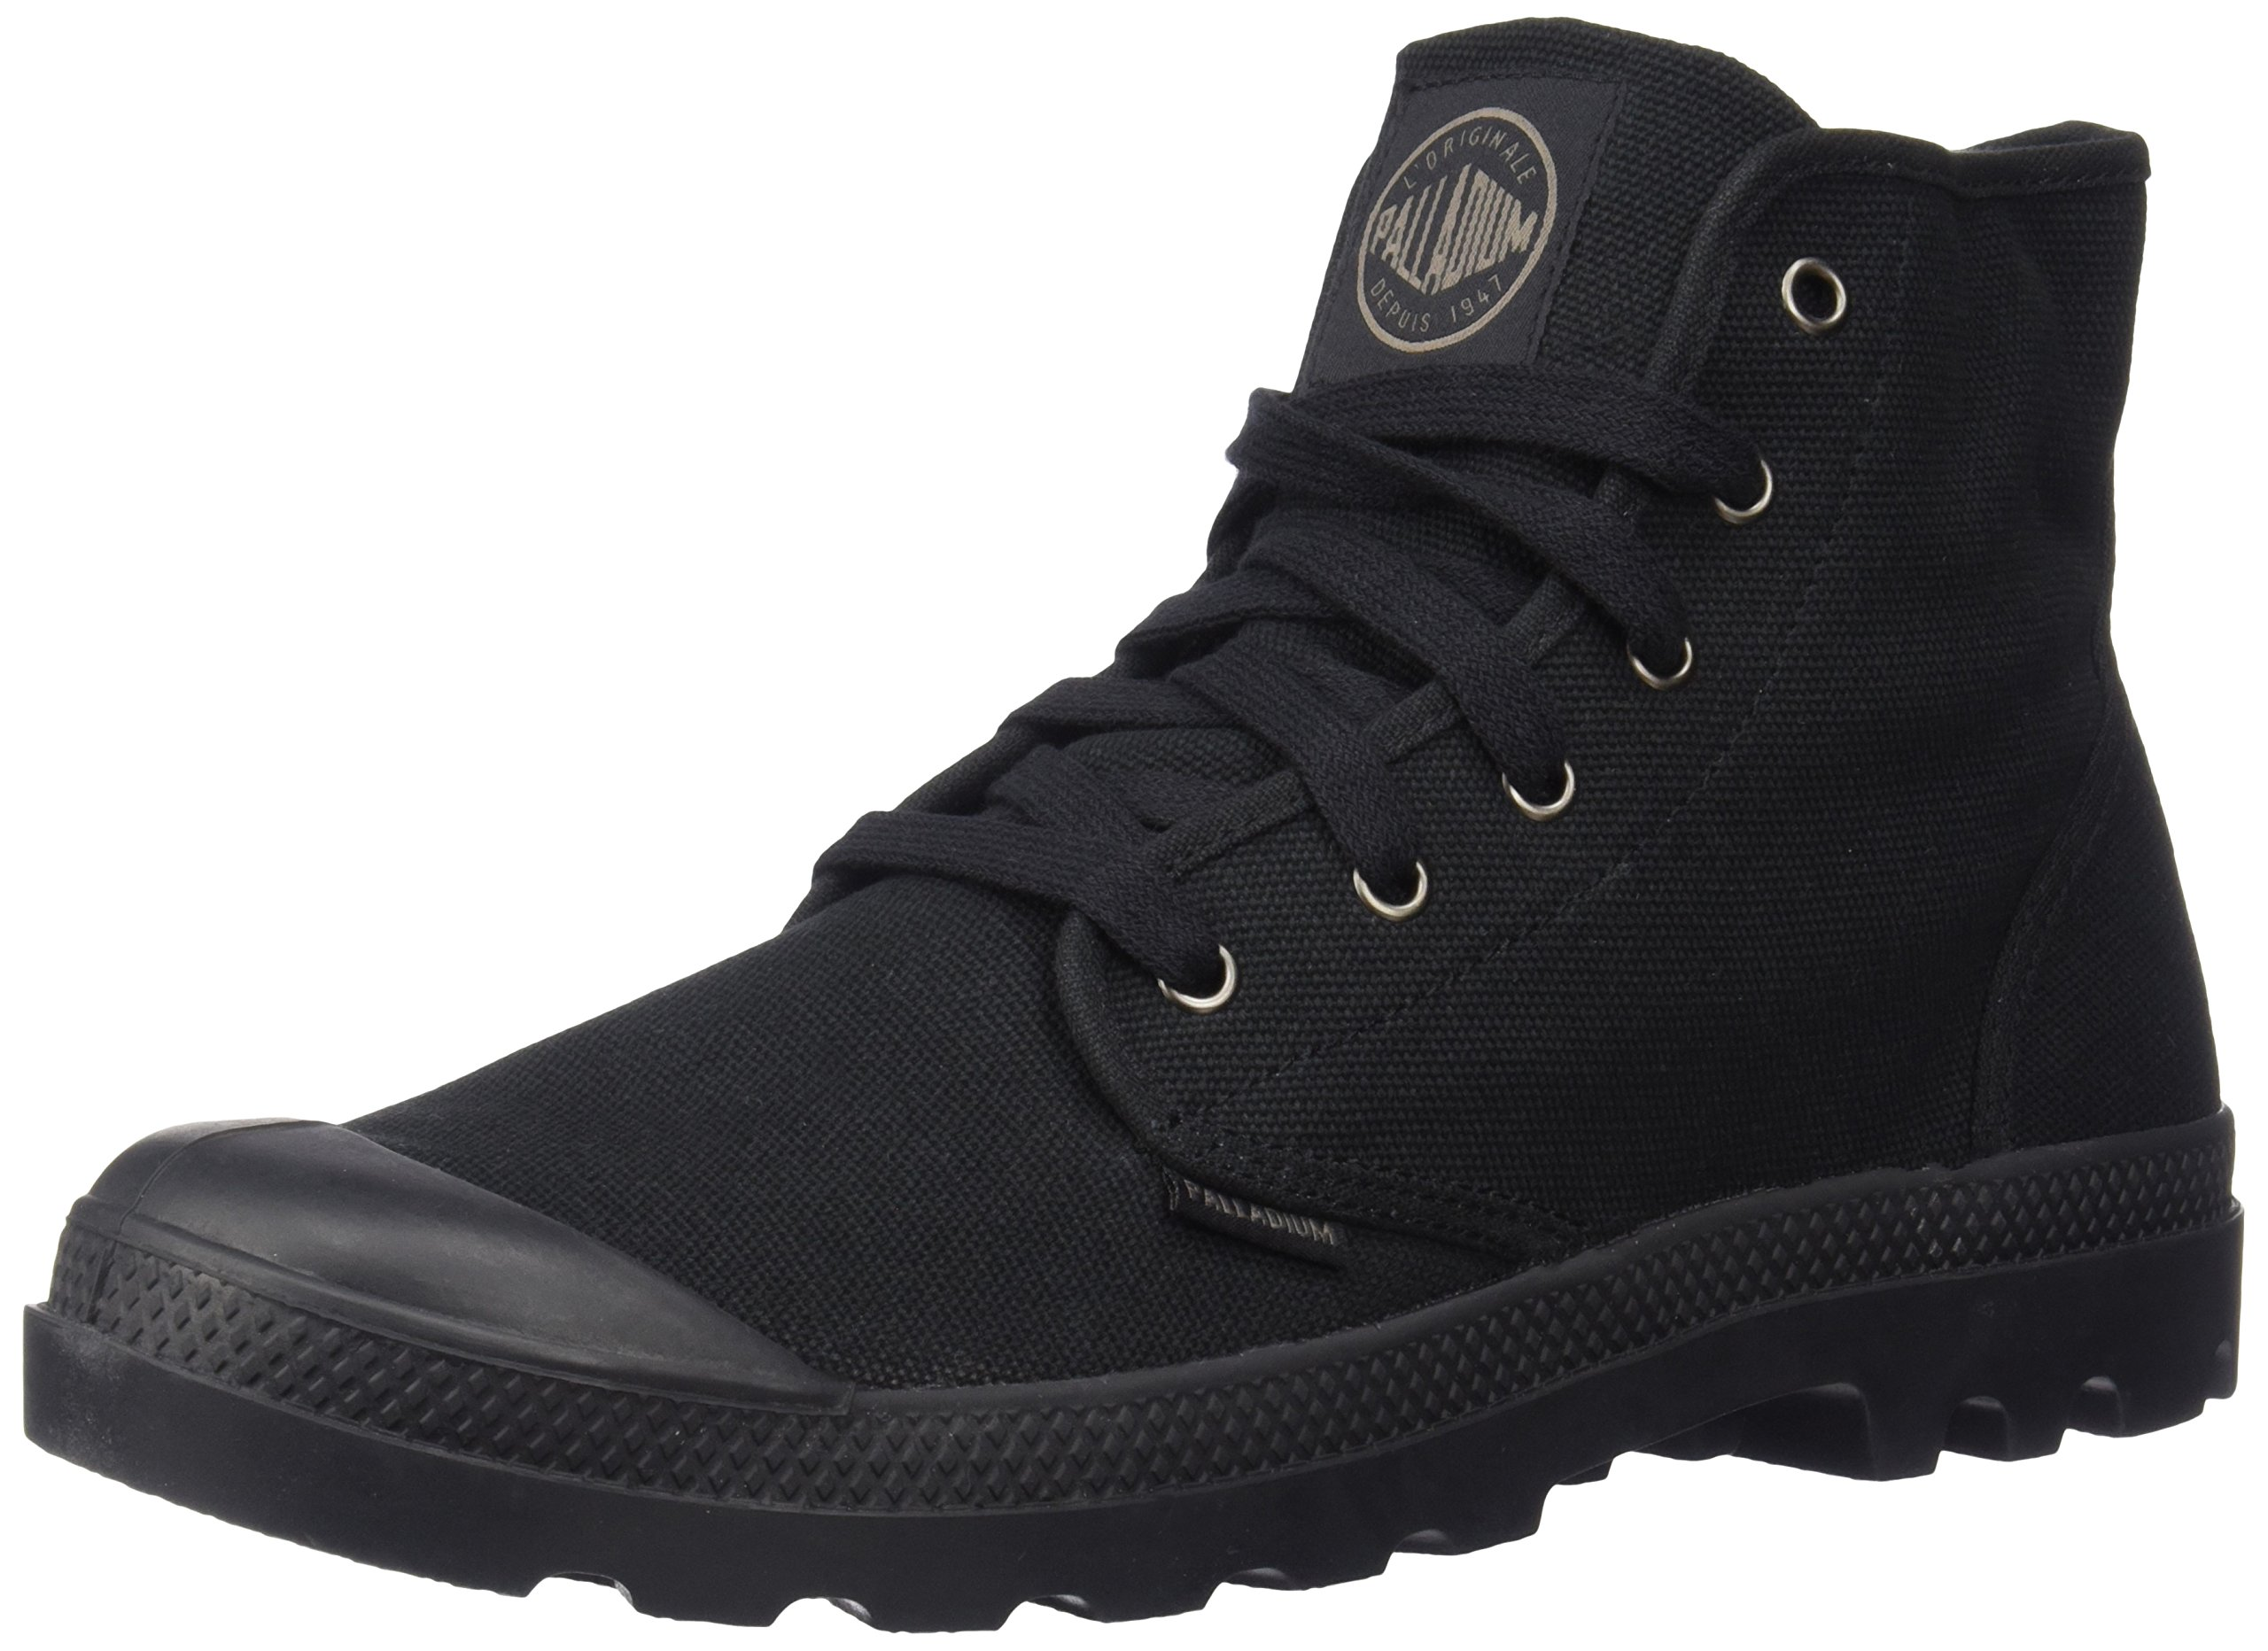 Palladium Men's Pampa Hi Canvas Boot,Black,9 M US by Palladium